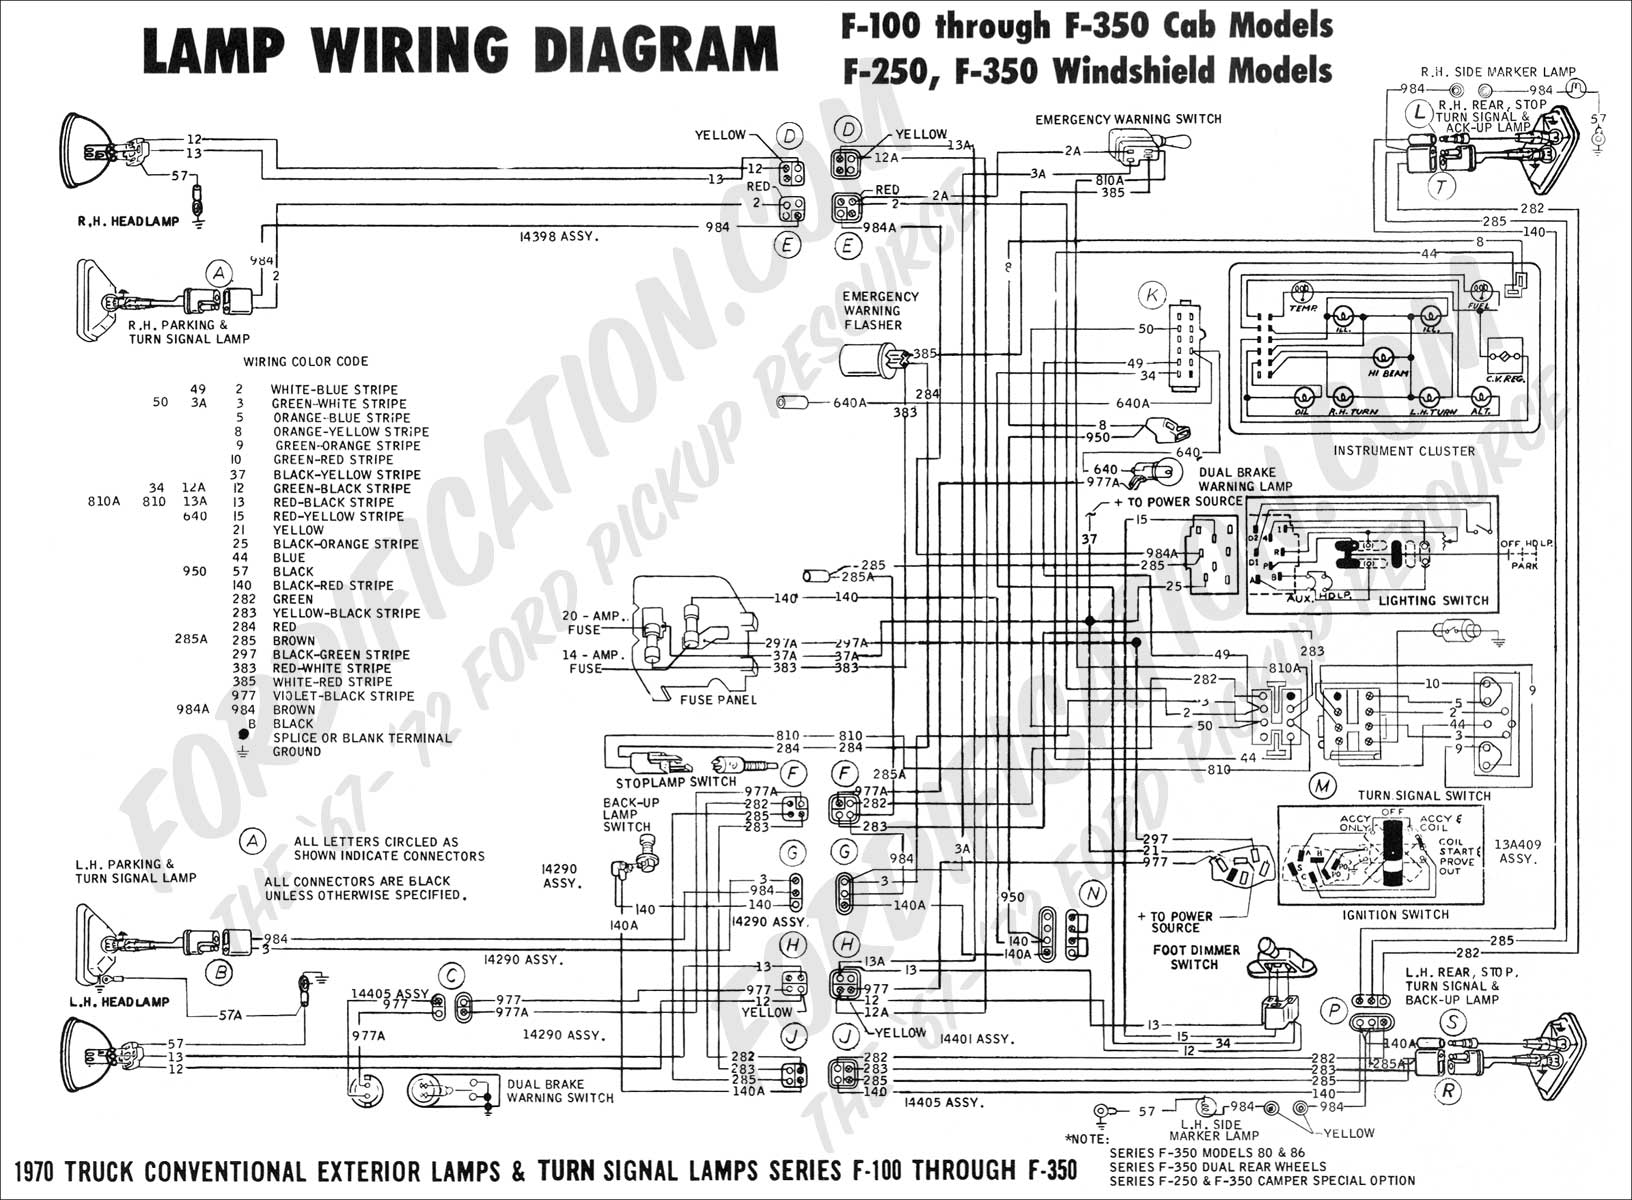 1990 ford f250 wiring diagram wiring diagram golf250 ford wiring diagram owner manual \u0026 wiring diagram 1990 ford f250 speaker wiring diagram 1990 ford f250 wiring diagram